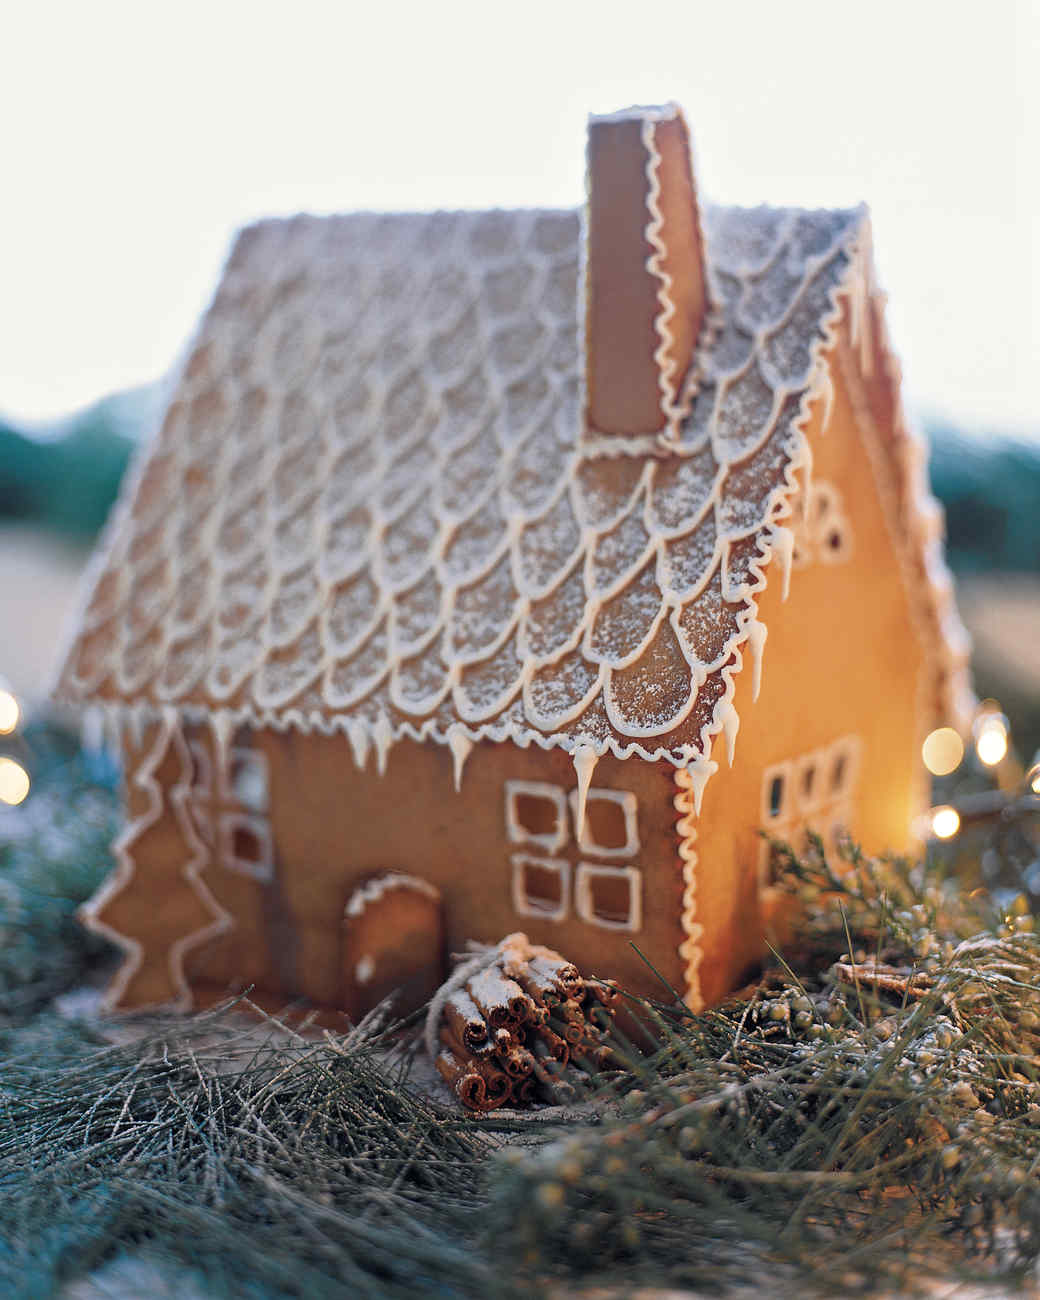 recipe: small gingerbread house recipe [22]